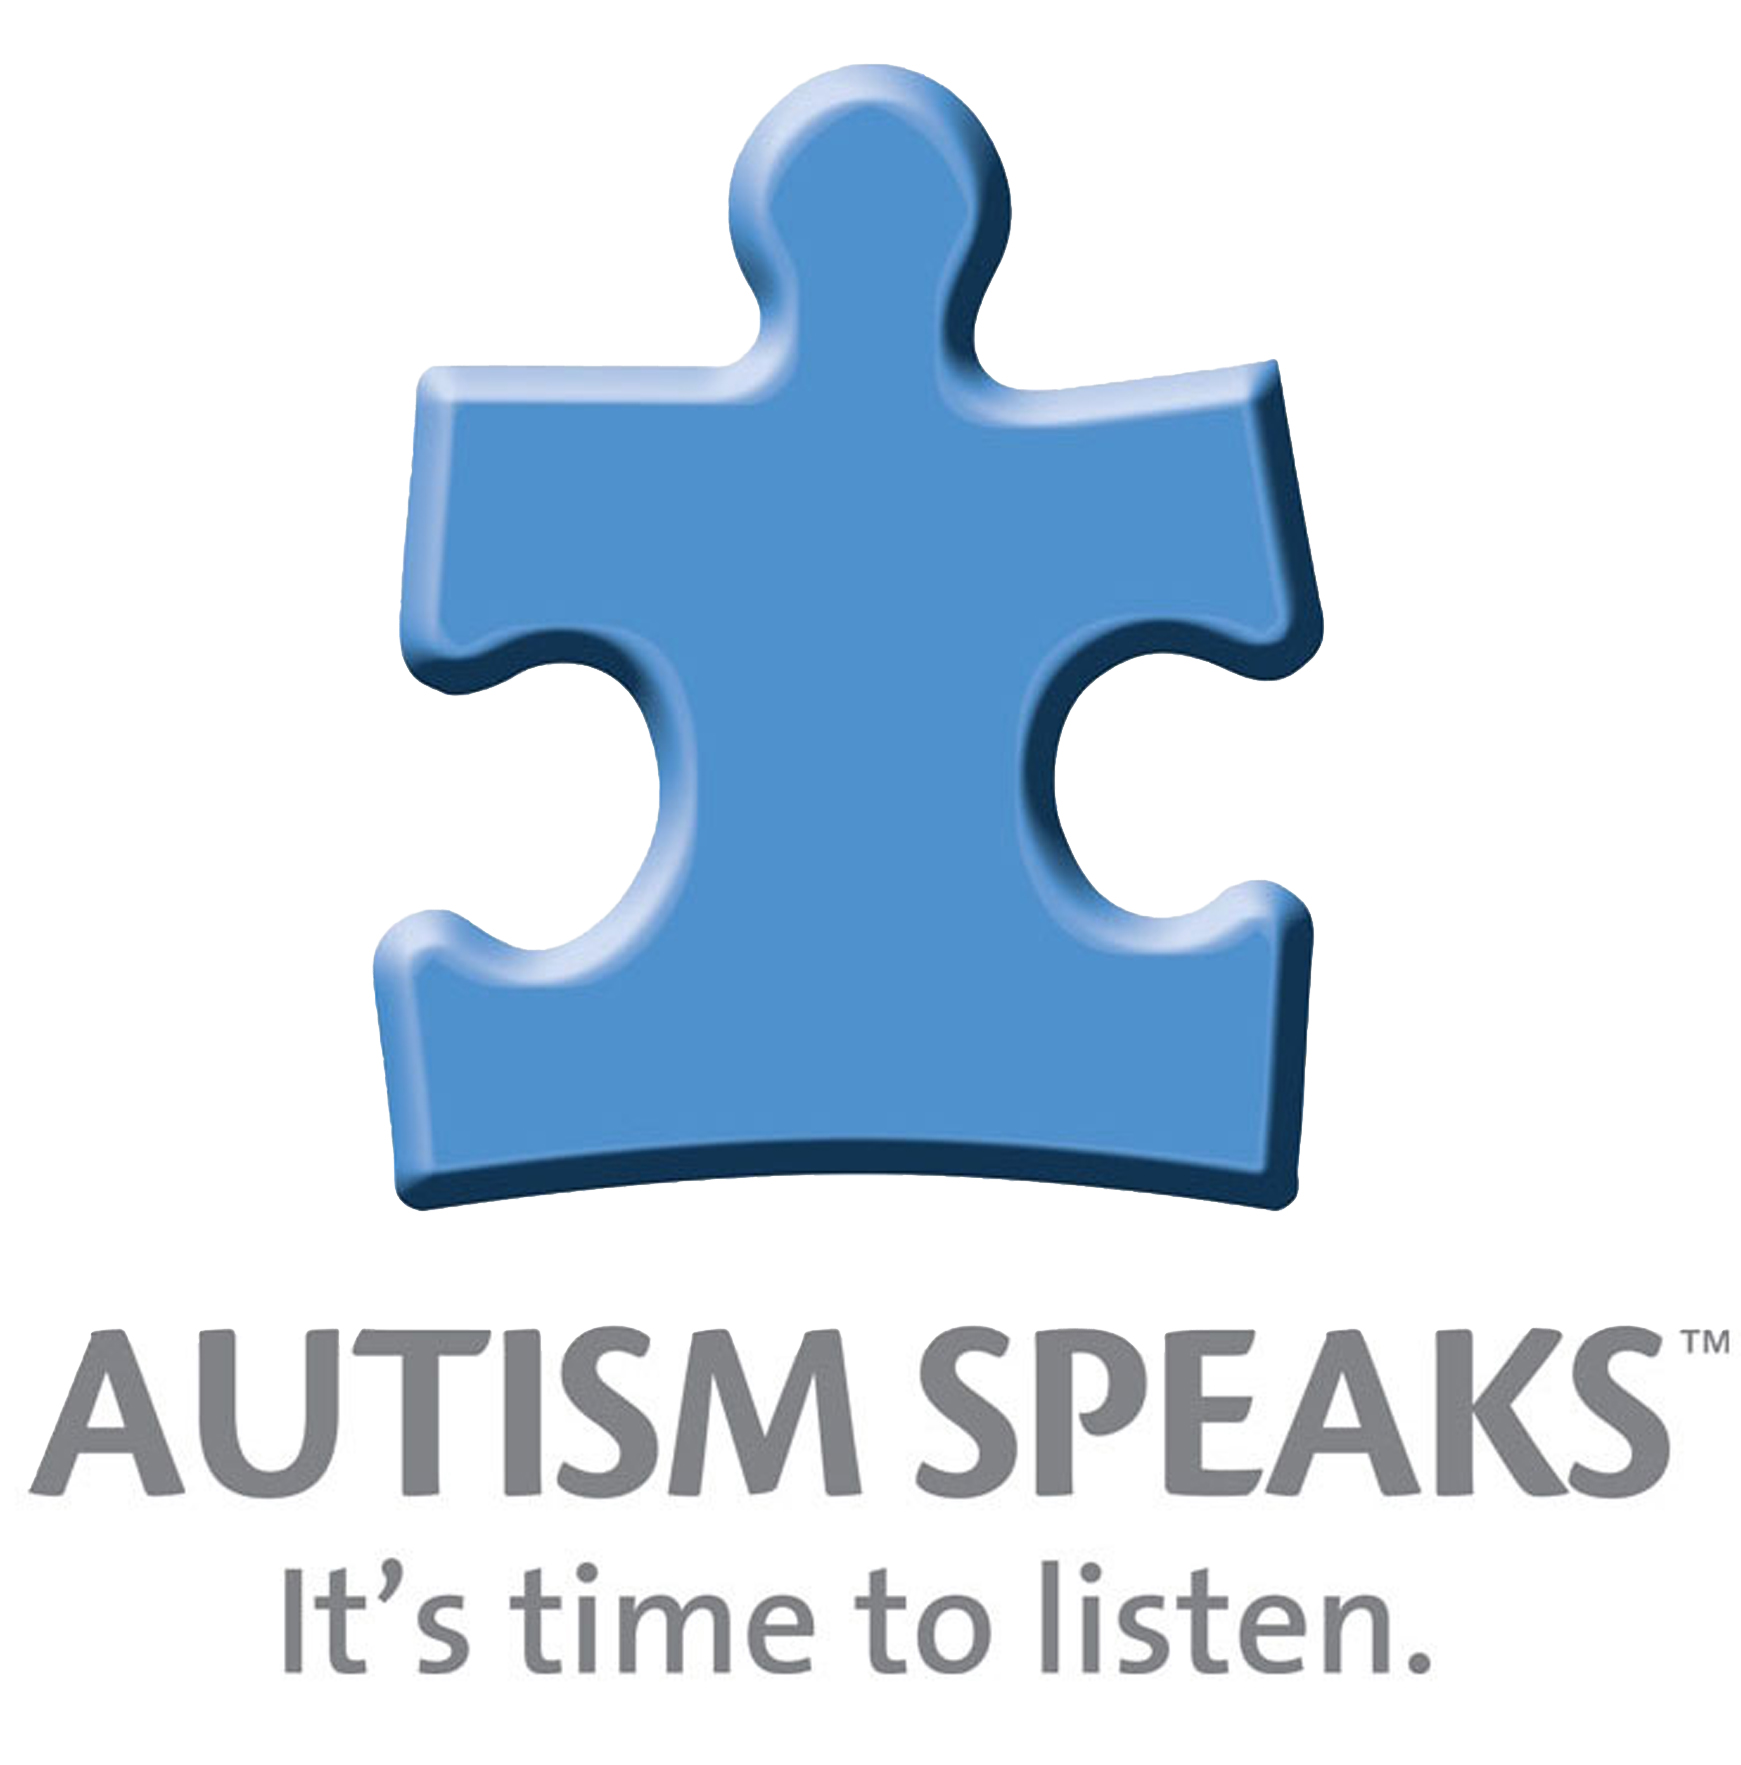 NASCAR on Fox Director Supports Autism Charity